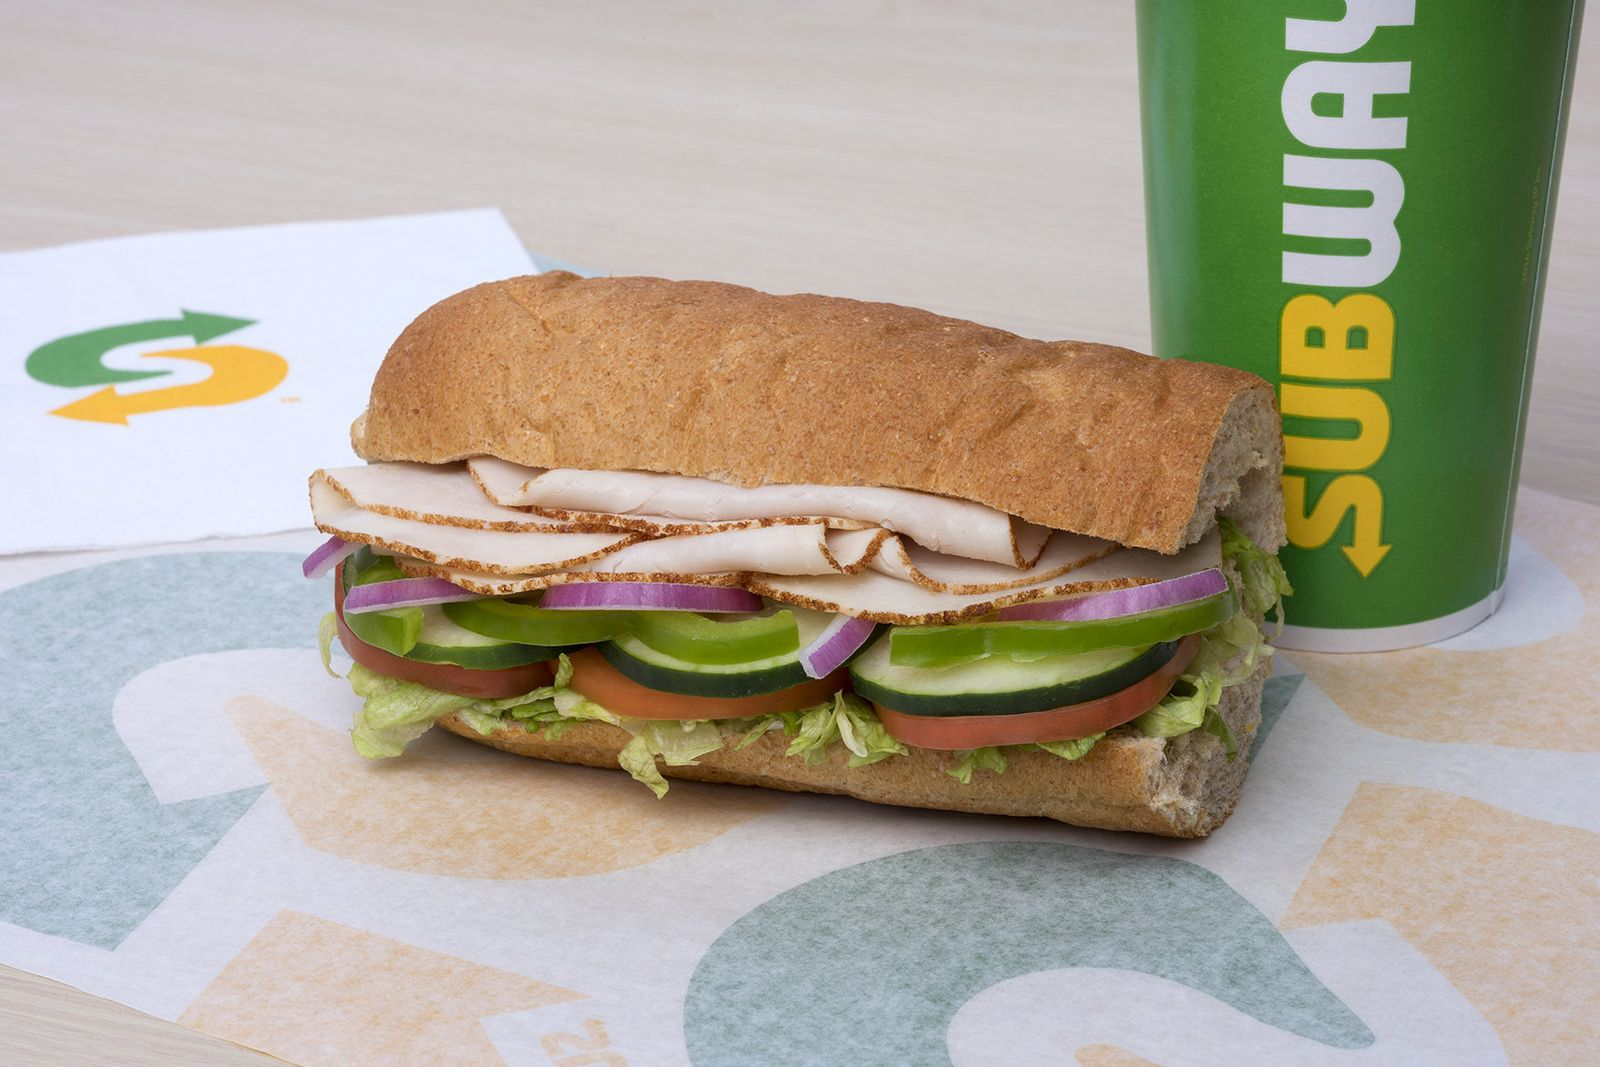 subway goes global to